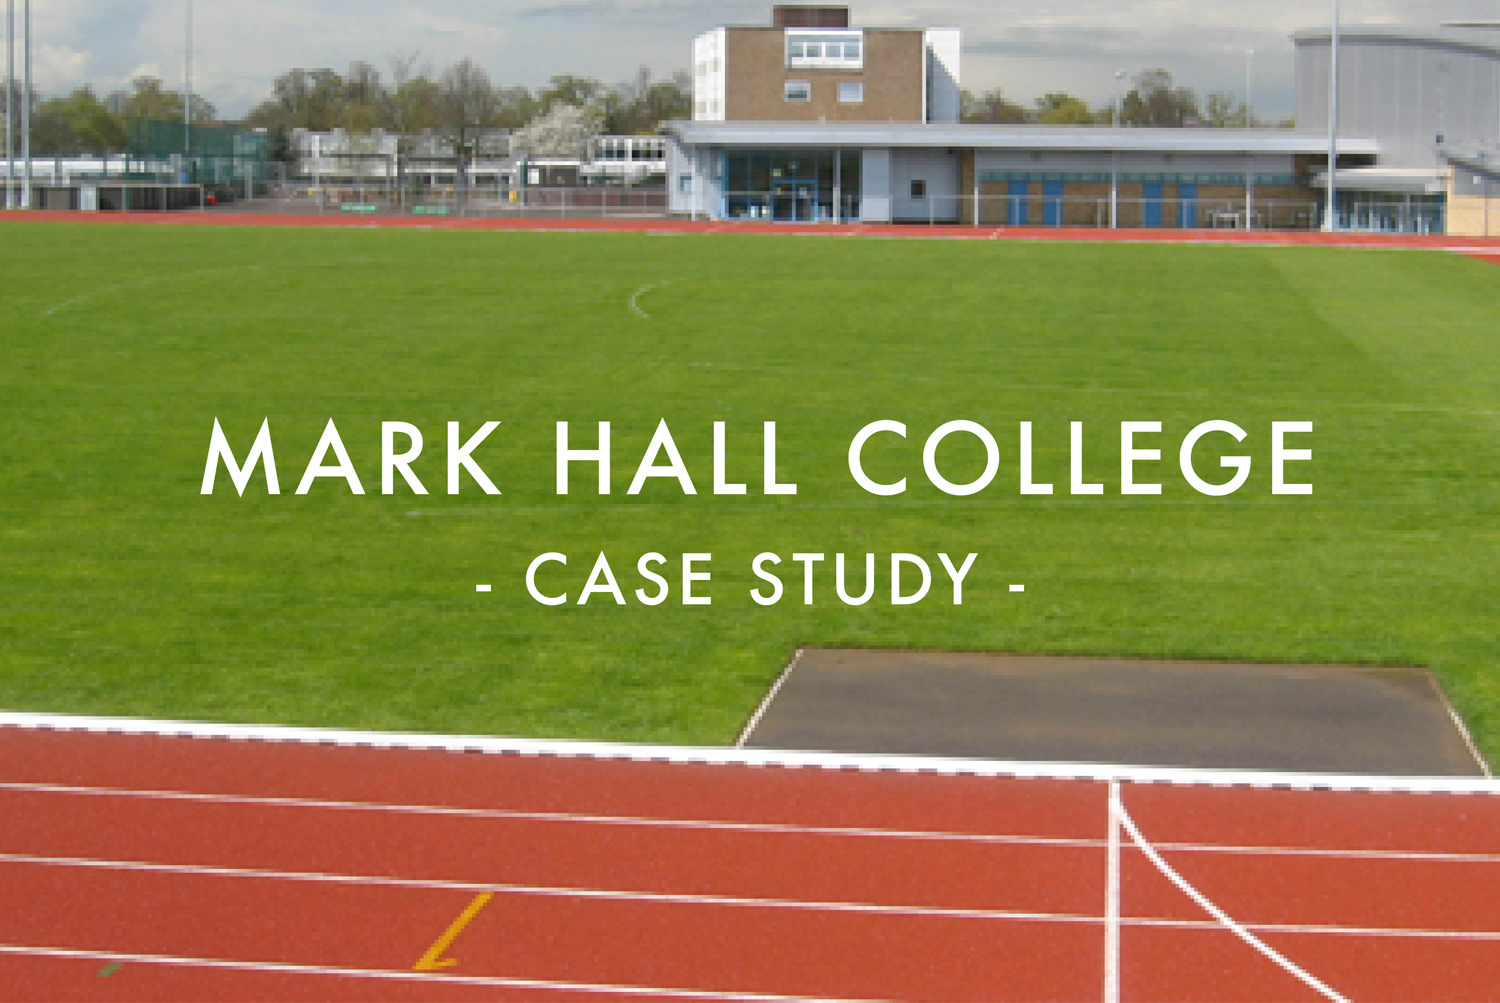 Mark Hall Specialist Sports College - Athletics Stadium Infield Re-Design & Reconstruction